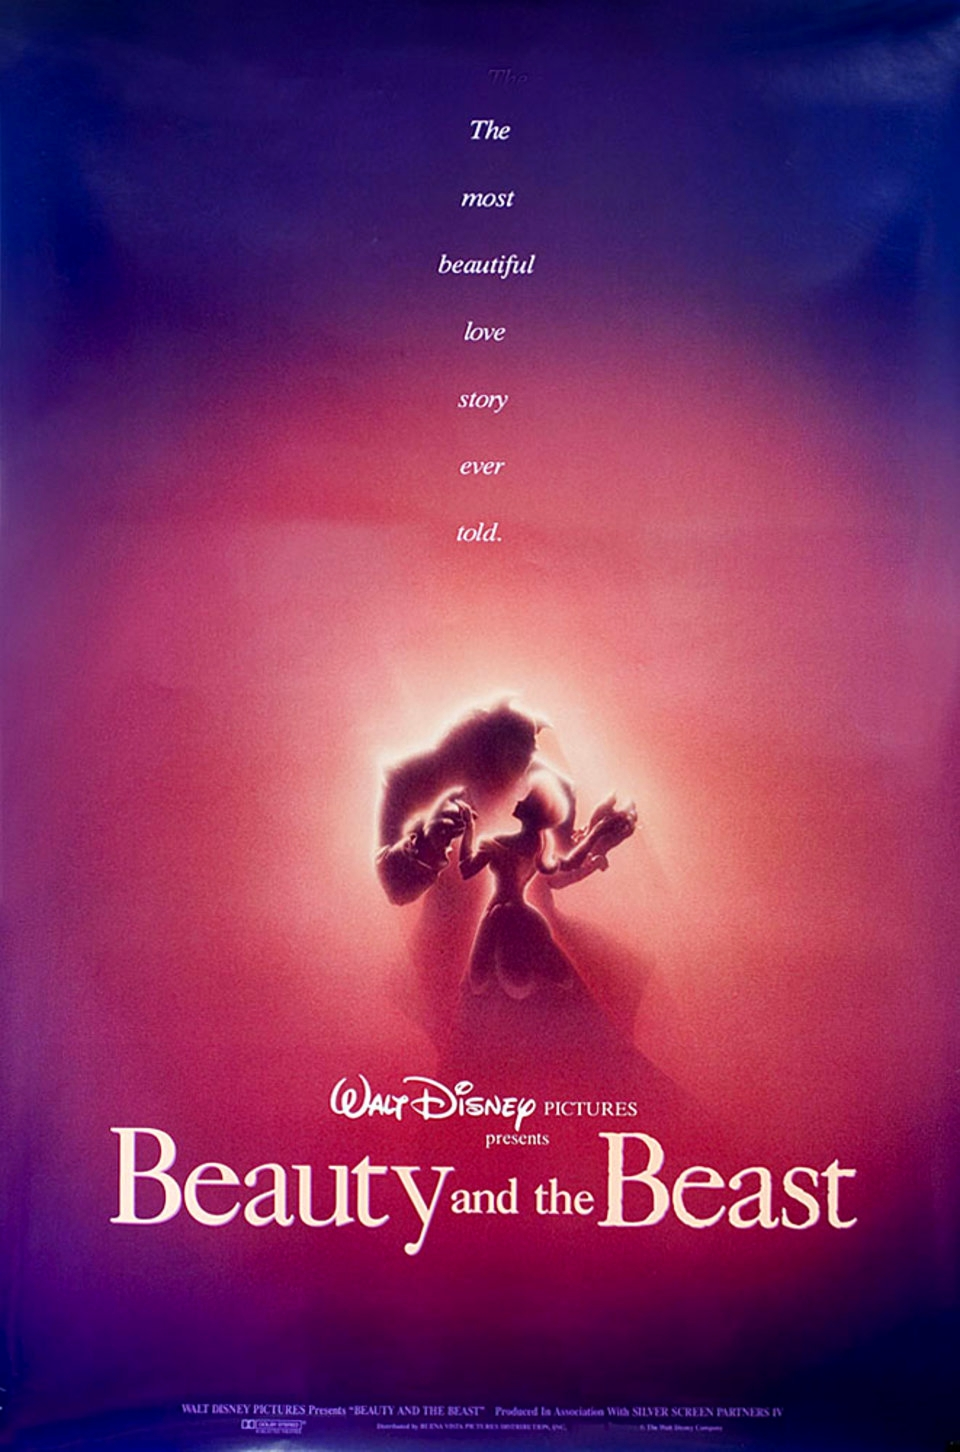 beauty-and-the-beast-md-web.jpg